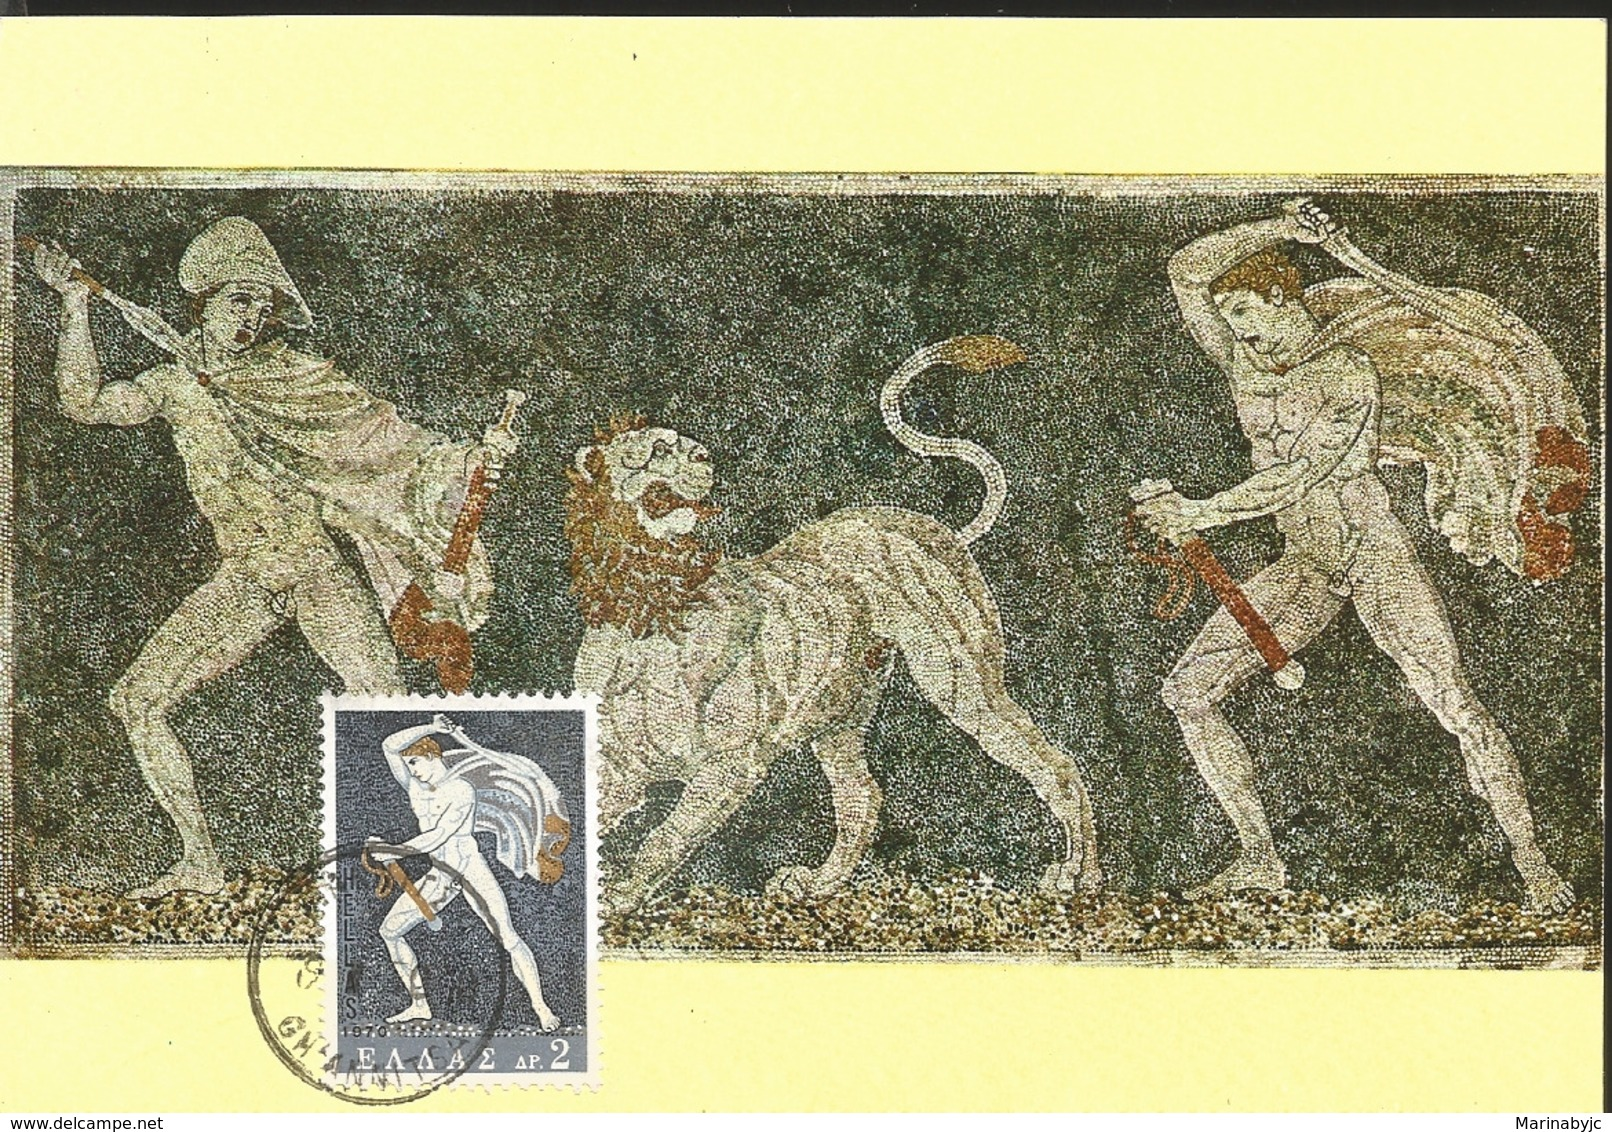 J) 1970 GREECE, MOSAIC FRON THE EXCAVATIONS, PAINTING, POSTCARD - Other